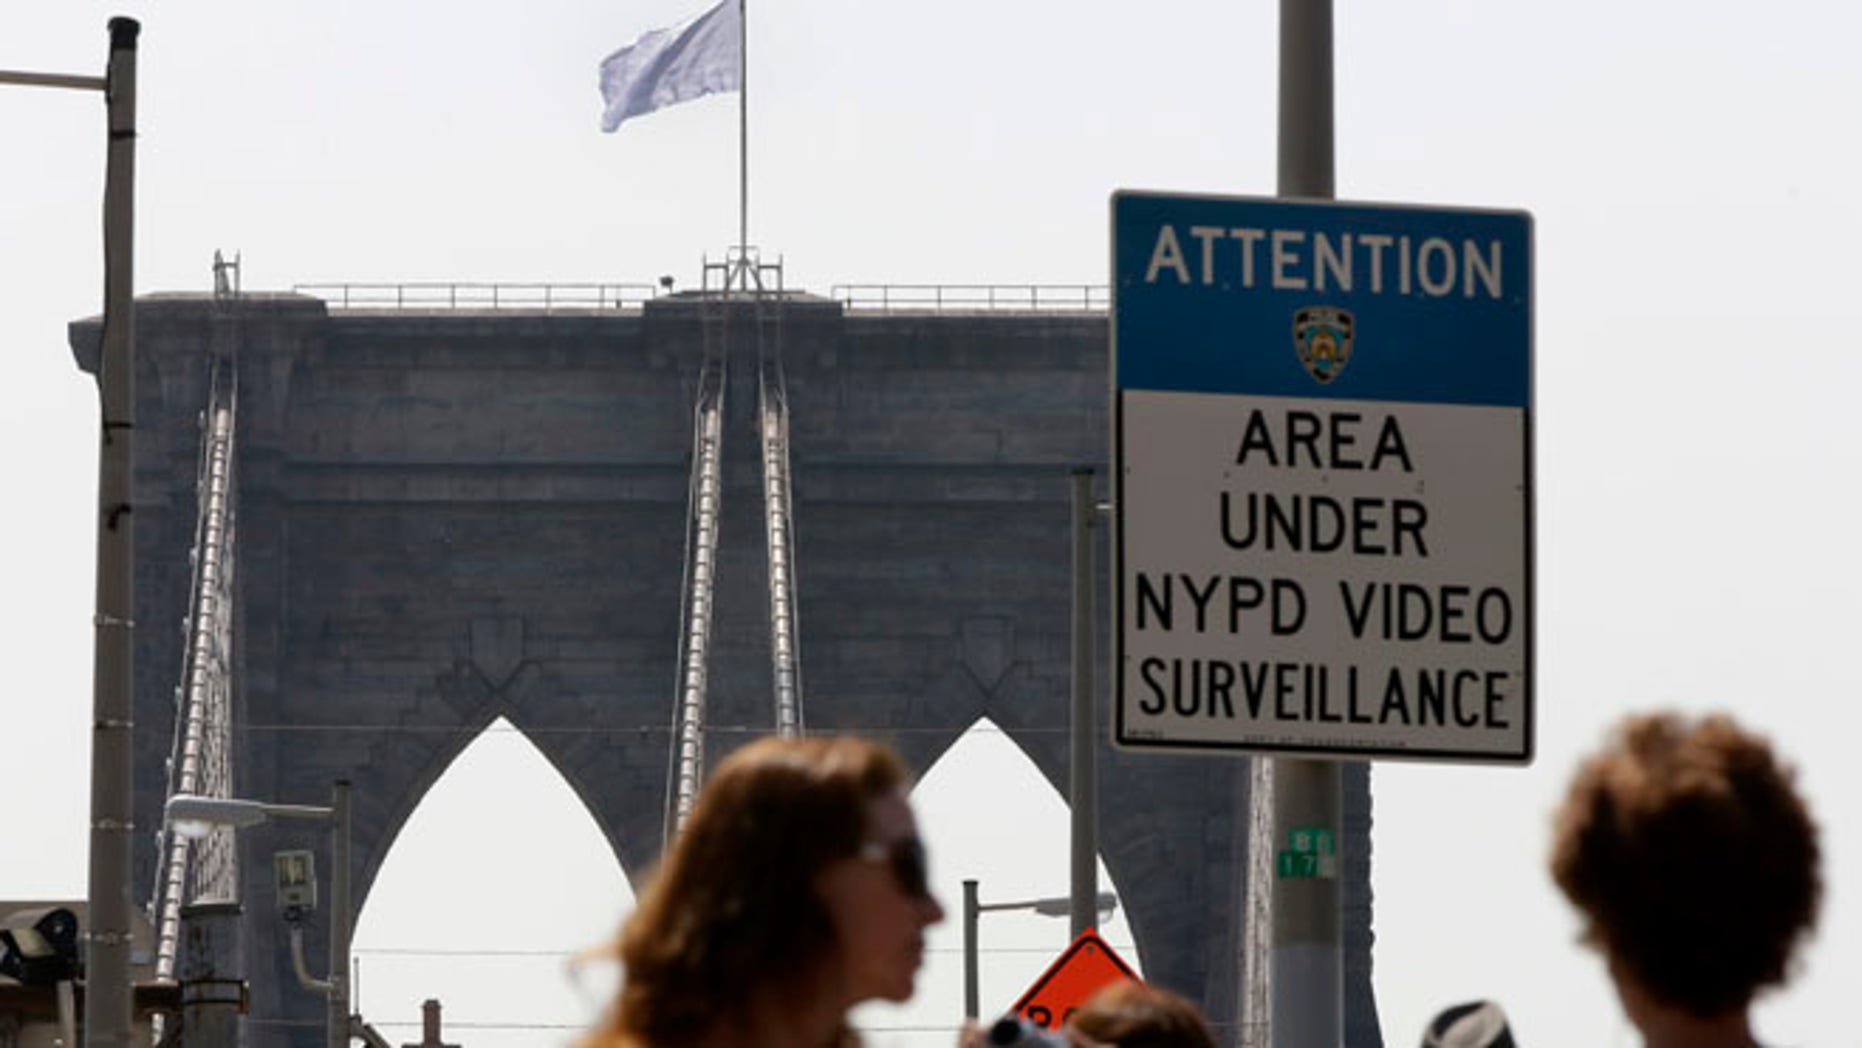 July 22, 2014: A white flag flies atop the west tower of New York's Brooklyn Bridge. The NYPD is investigating who was behind the flag switch, but one person called The Daily News claiming responsibility.